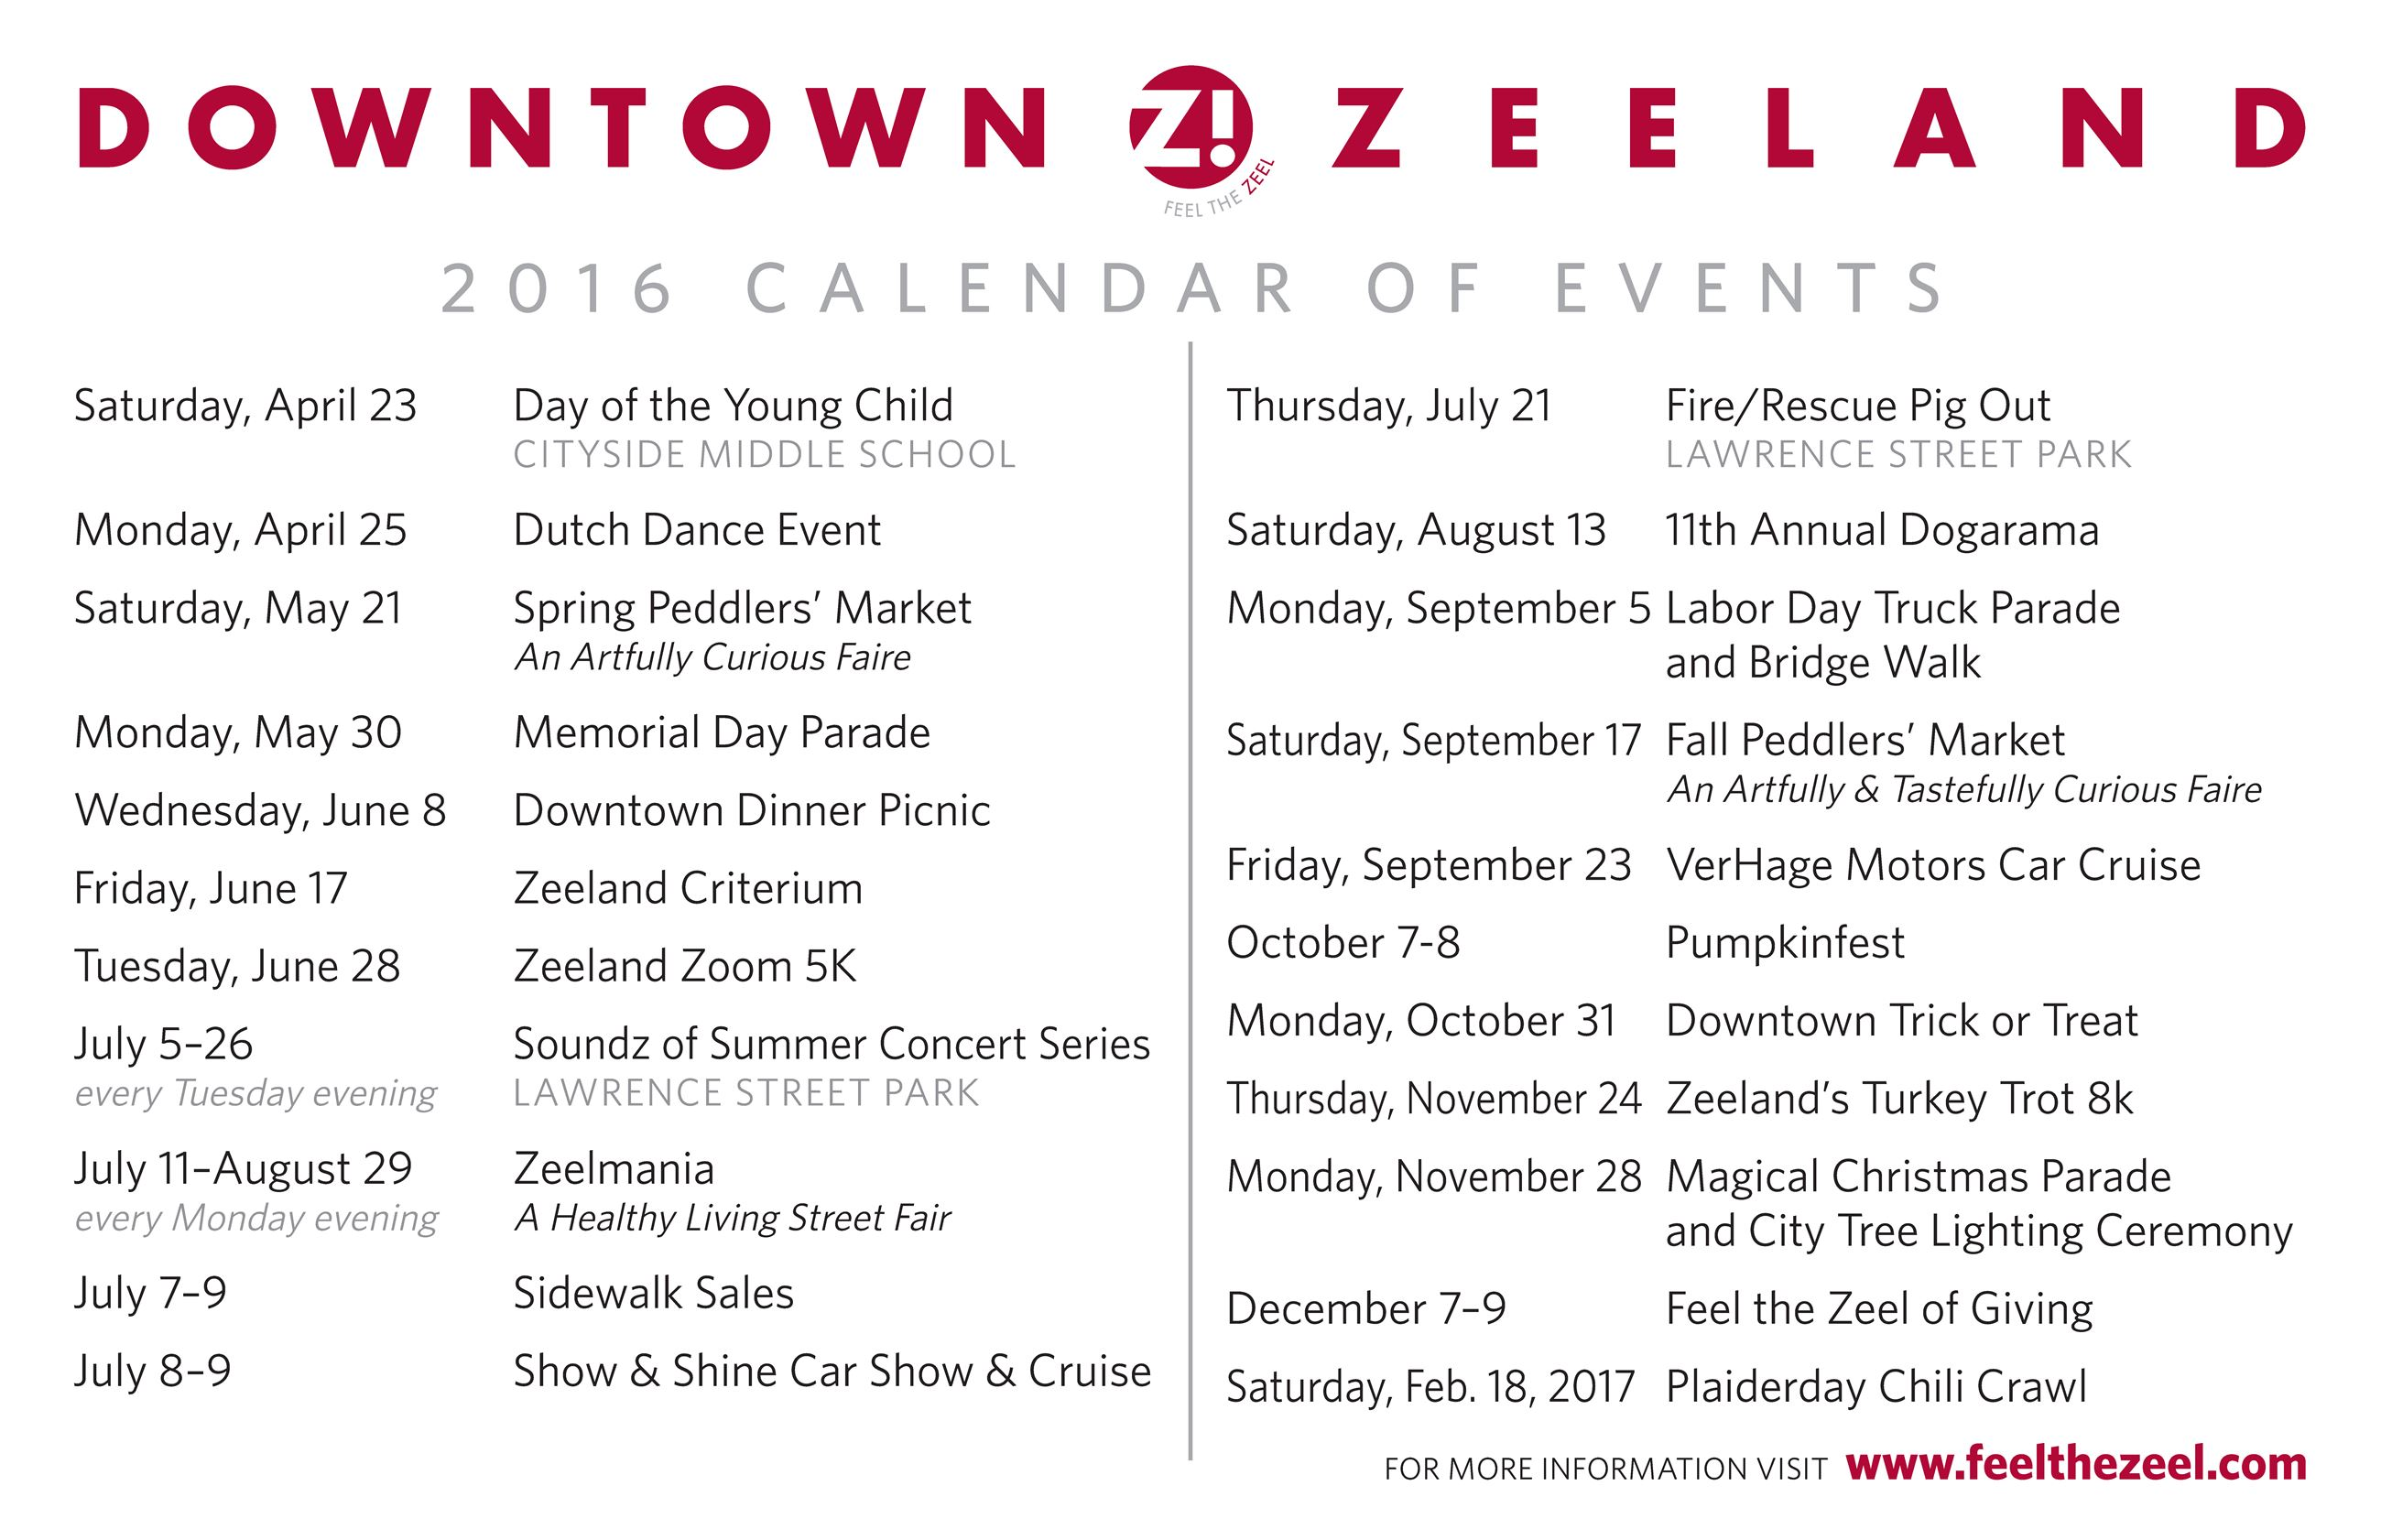 downtown zeeland calendar of events 2016_Page_1